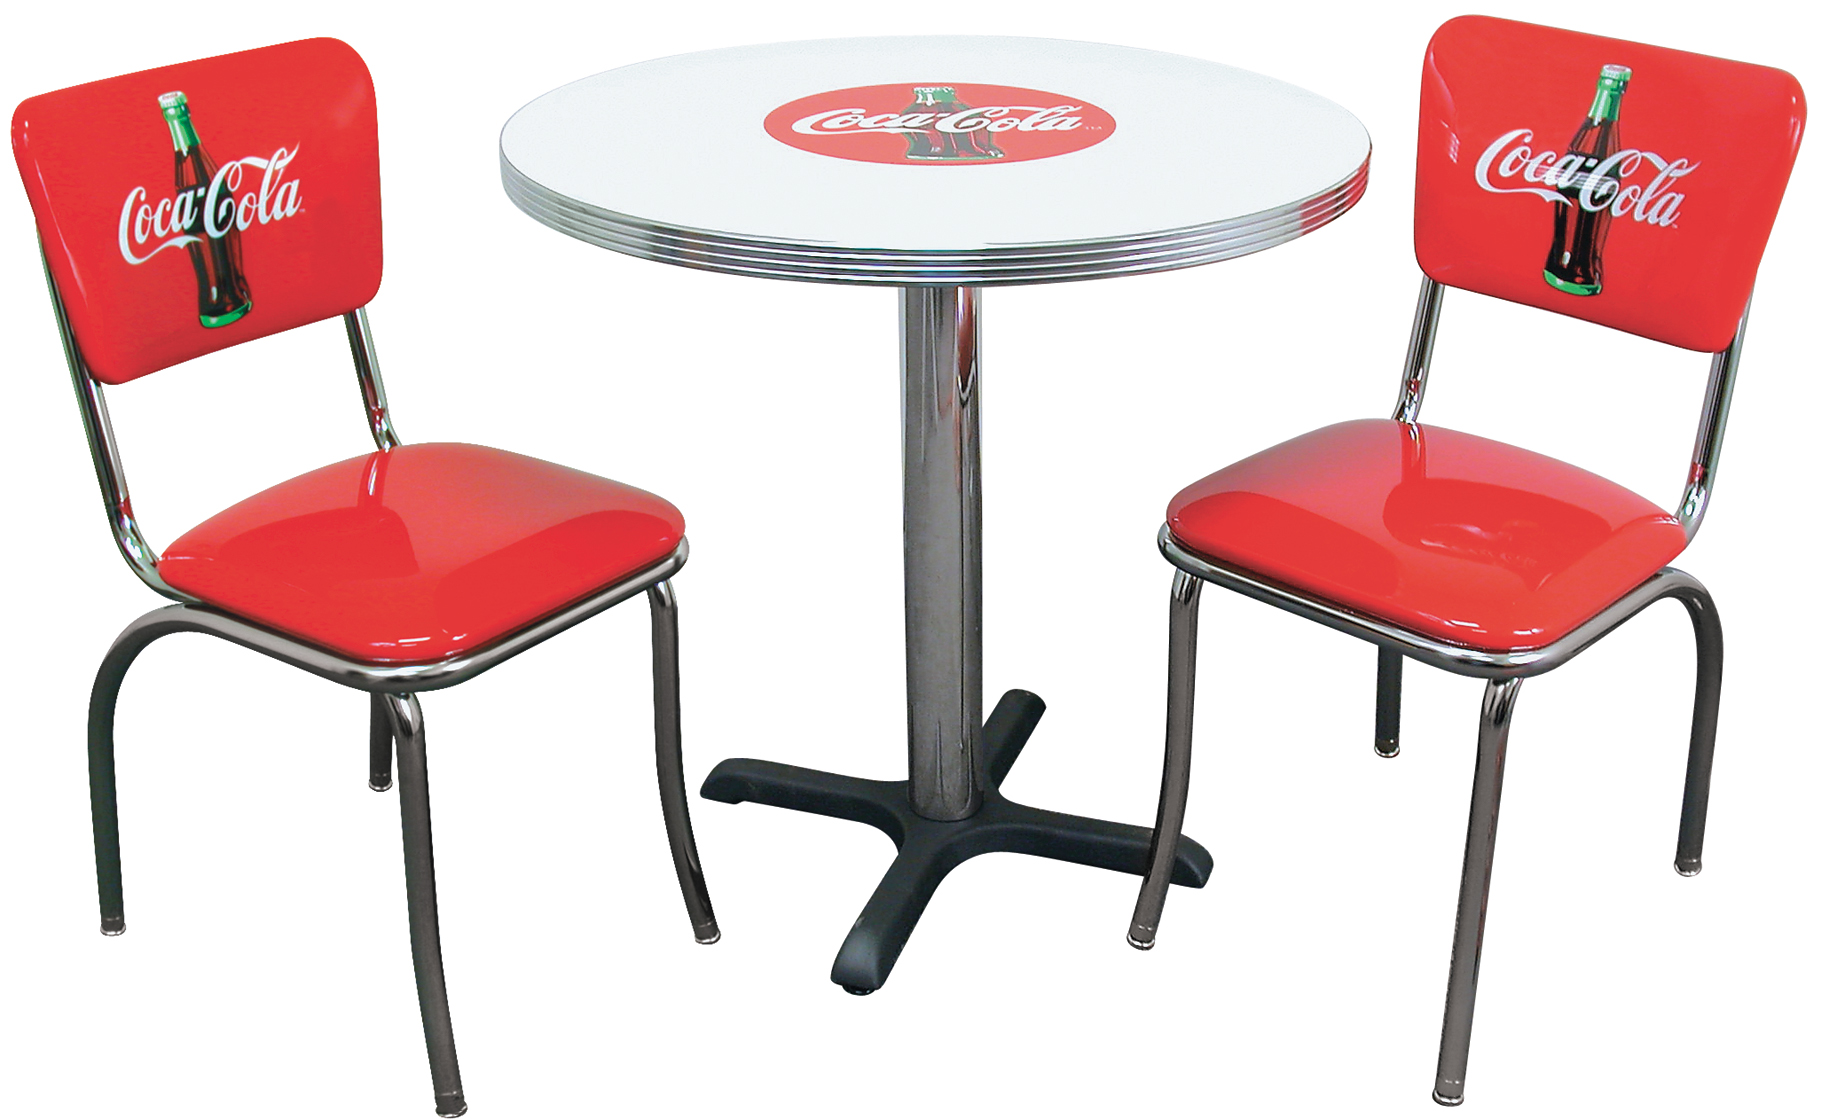 new retro dining coca cola furniture. Black Bedroom Furniture Sets. Home Design Ideas